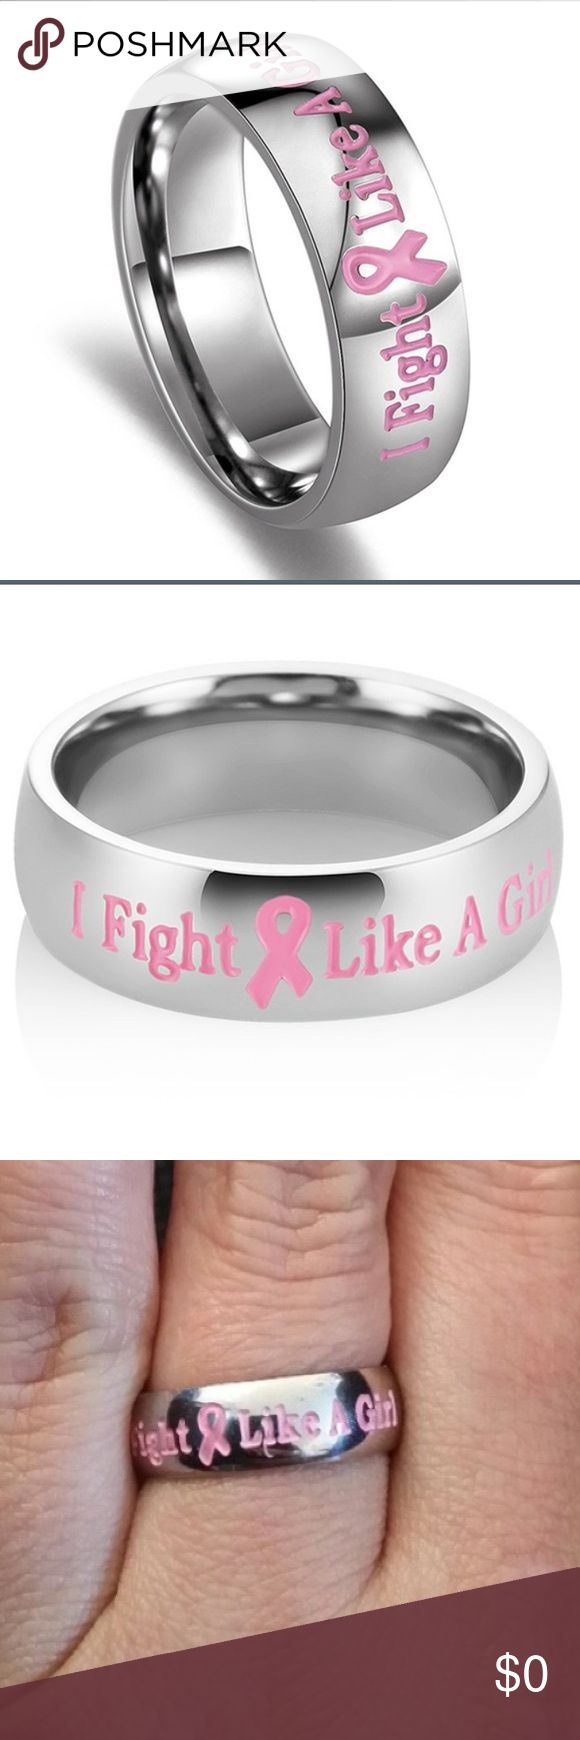 Fight like a girl stainless titanium ring Material 316L Stainless Steel (Titanium Steel) Sizes: US Size. Color : Silver & Pink Milkle Gift offers Great values at affordable Price, mainly made of high quality Stainless Steel, Tungsten, Silver and Leather.  Type 316L stainless steel is an extra-low carbon version of the 316 steel alloy. The lower carbon content in 316L minimizes deleterious carbide precipitation as a result of welding. 316L is used when welding is required in order to ensure…